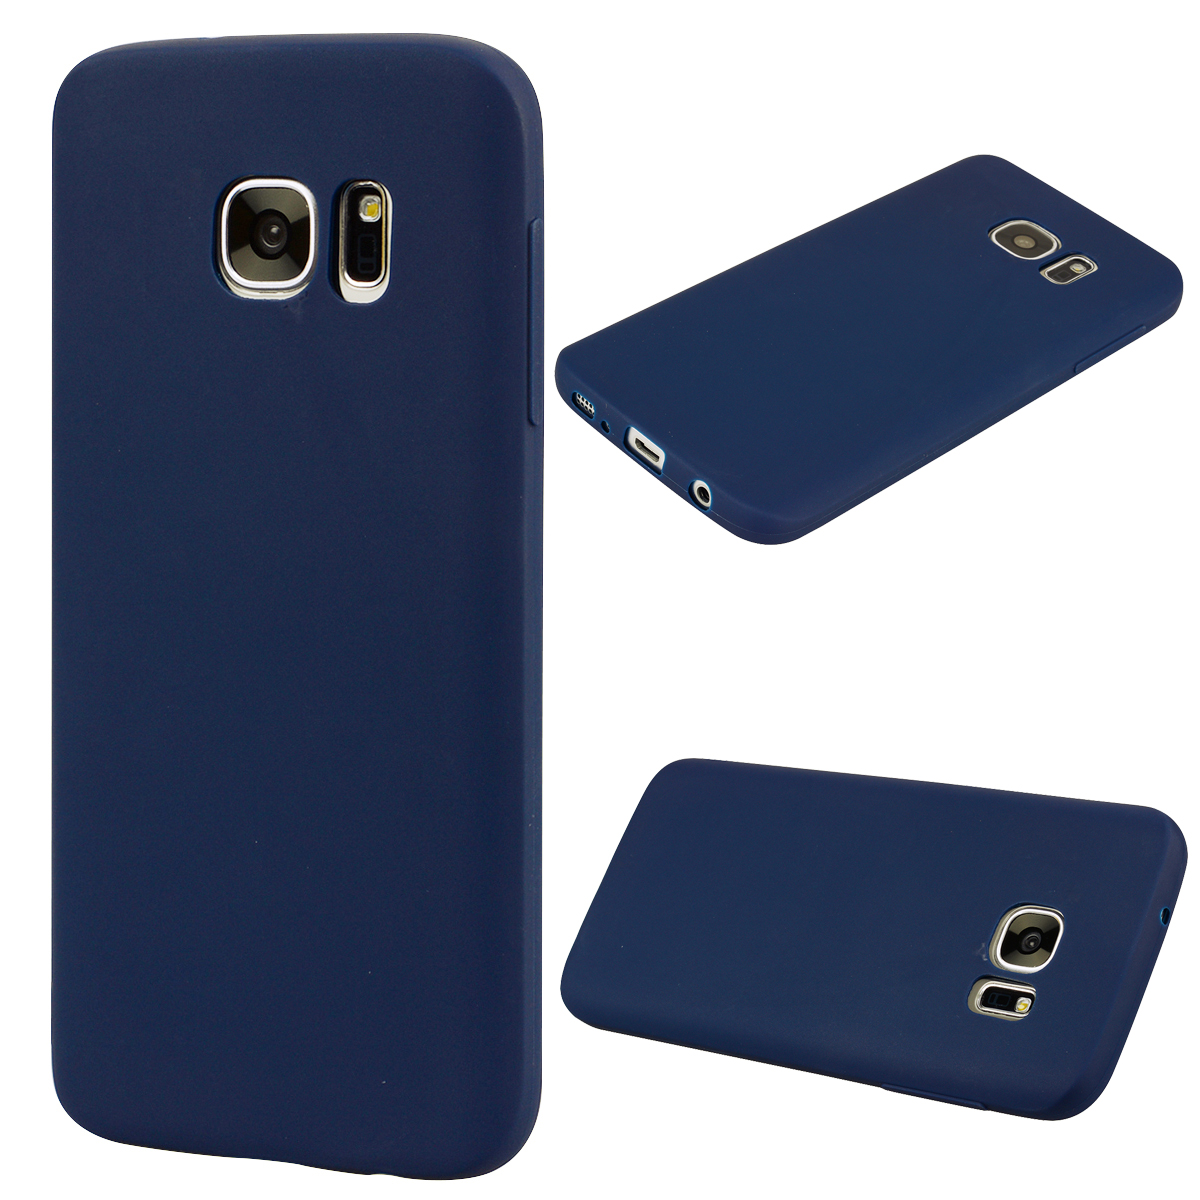 for Samsung S7 edge Cute Candy Color Matte TPU Anti-scratch Non-slip Protective Cover Back Case Navy